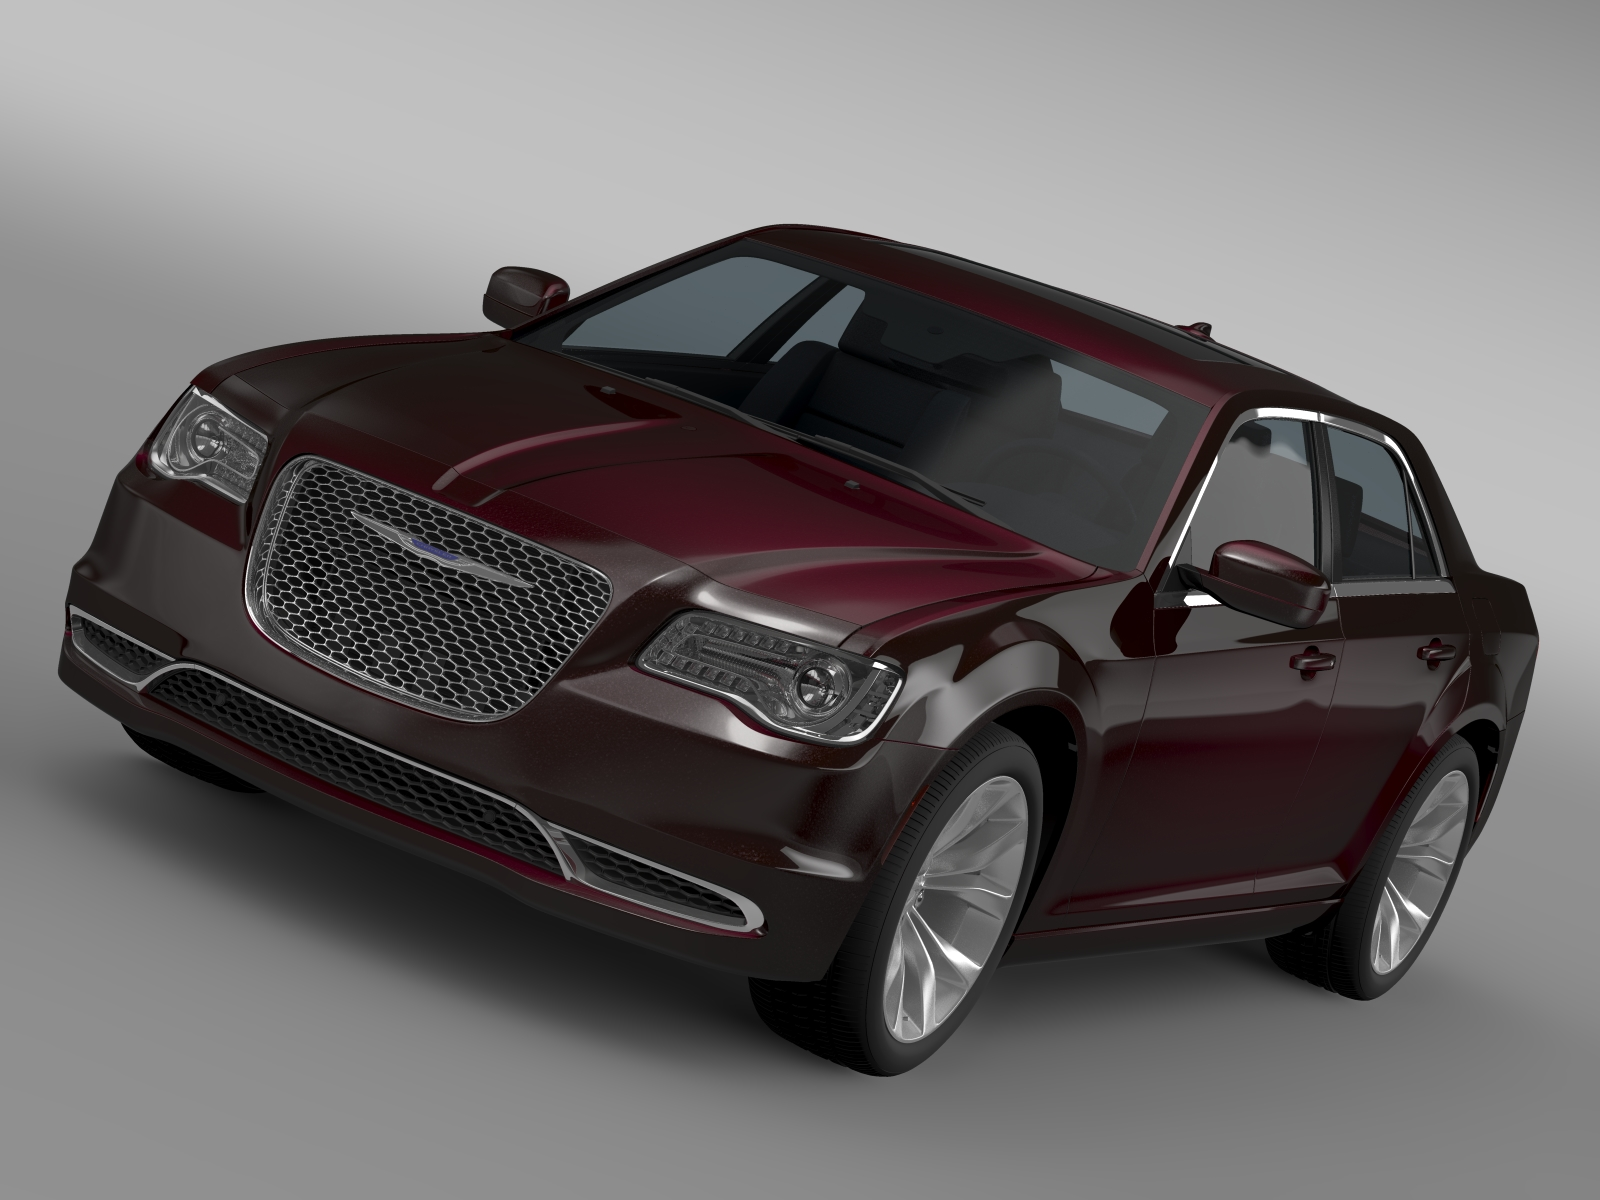 chrysler 300 limited lx2 2016 3d model 3ds max fbx c4d lwo ma mb hrc xsi obj 216006